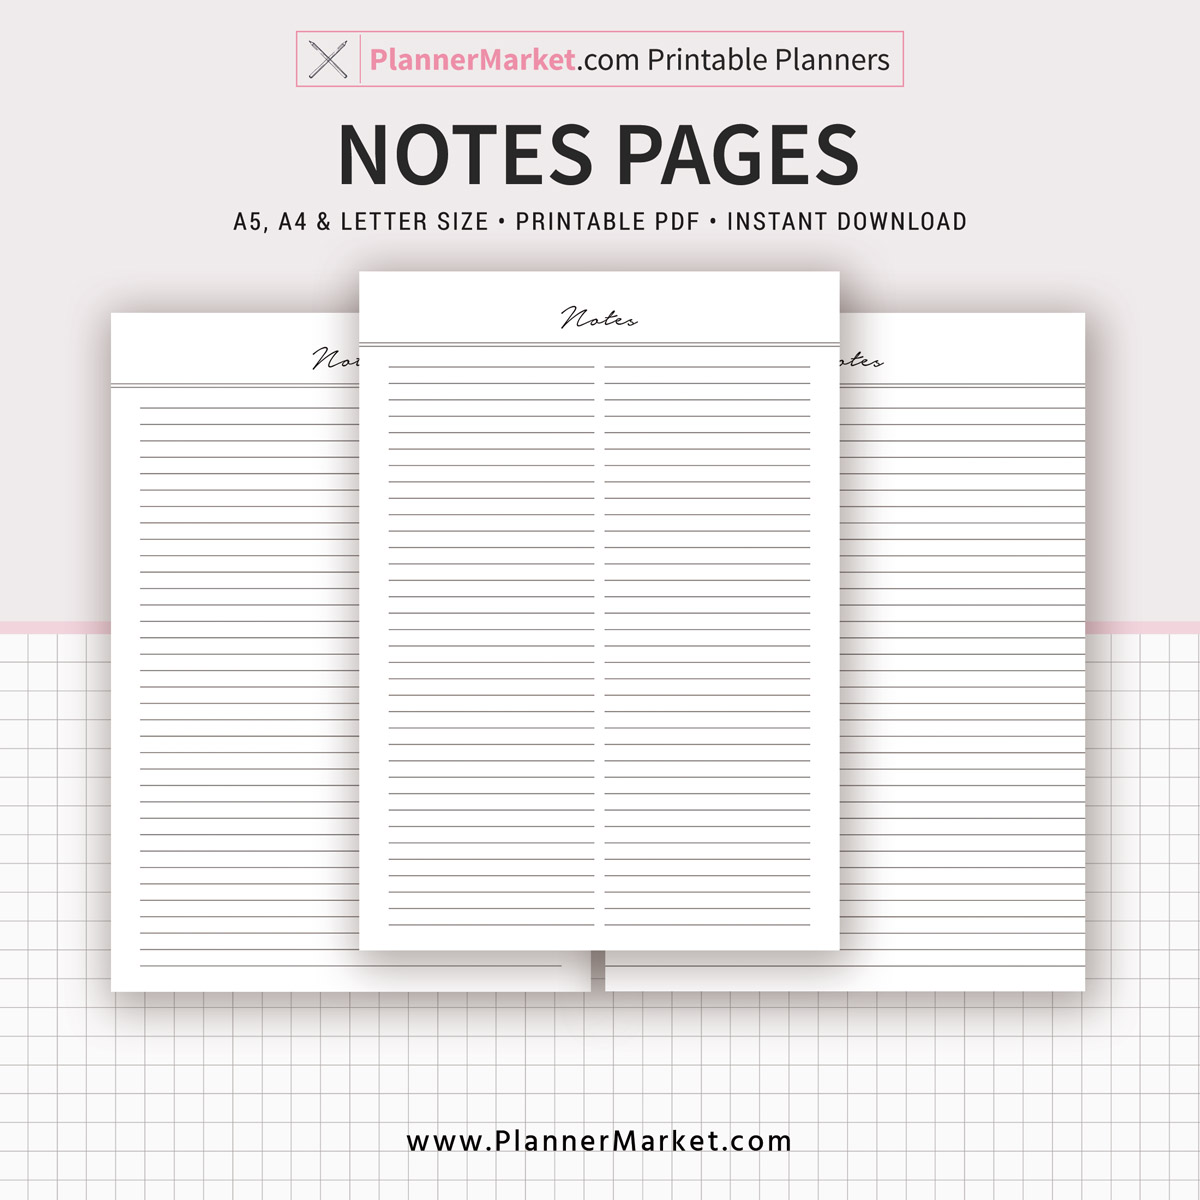 photograph relating to Printable Notes Page identify Notes Webpage, 2019 Planner, A5, A4, Letter Measurement, Planner Refill, Planner Binder, Printable Planner, Quick Down load